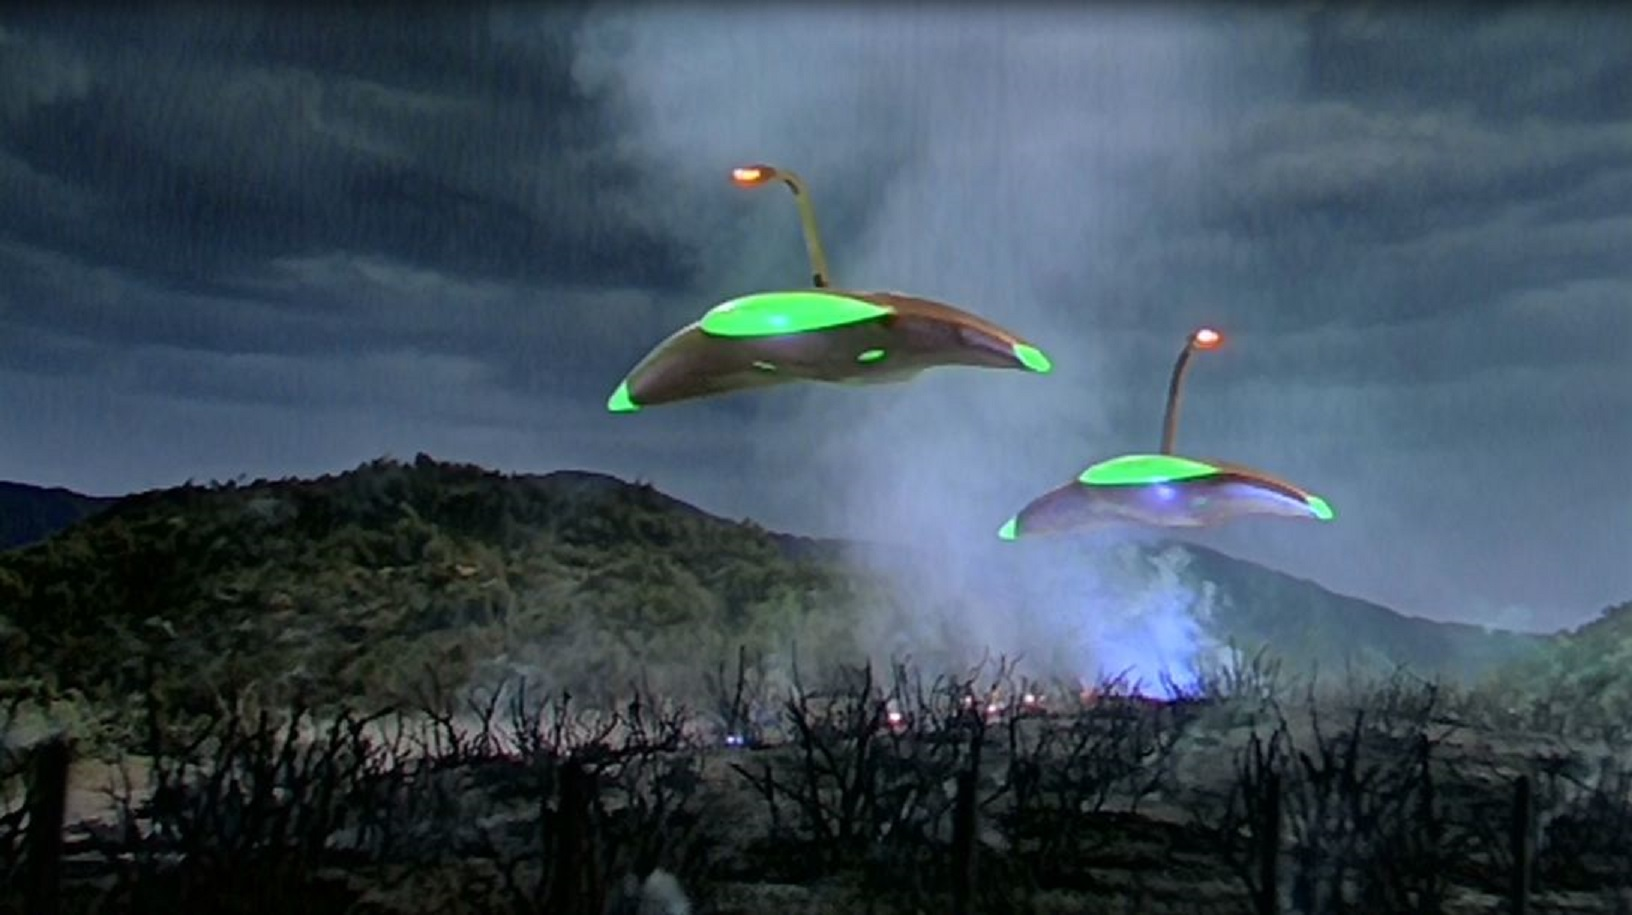 The Martian war machines in The War of the Worlds (1953)